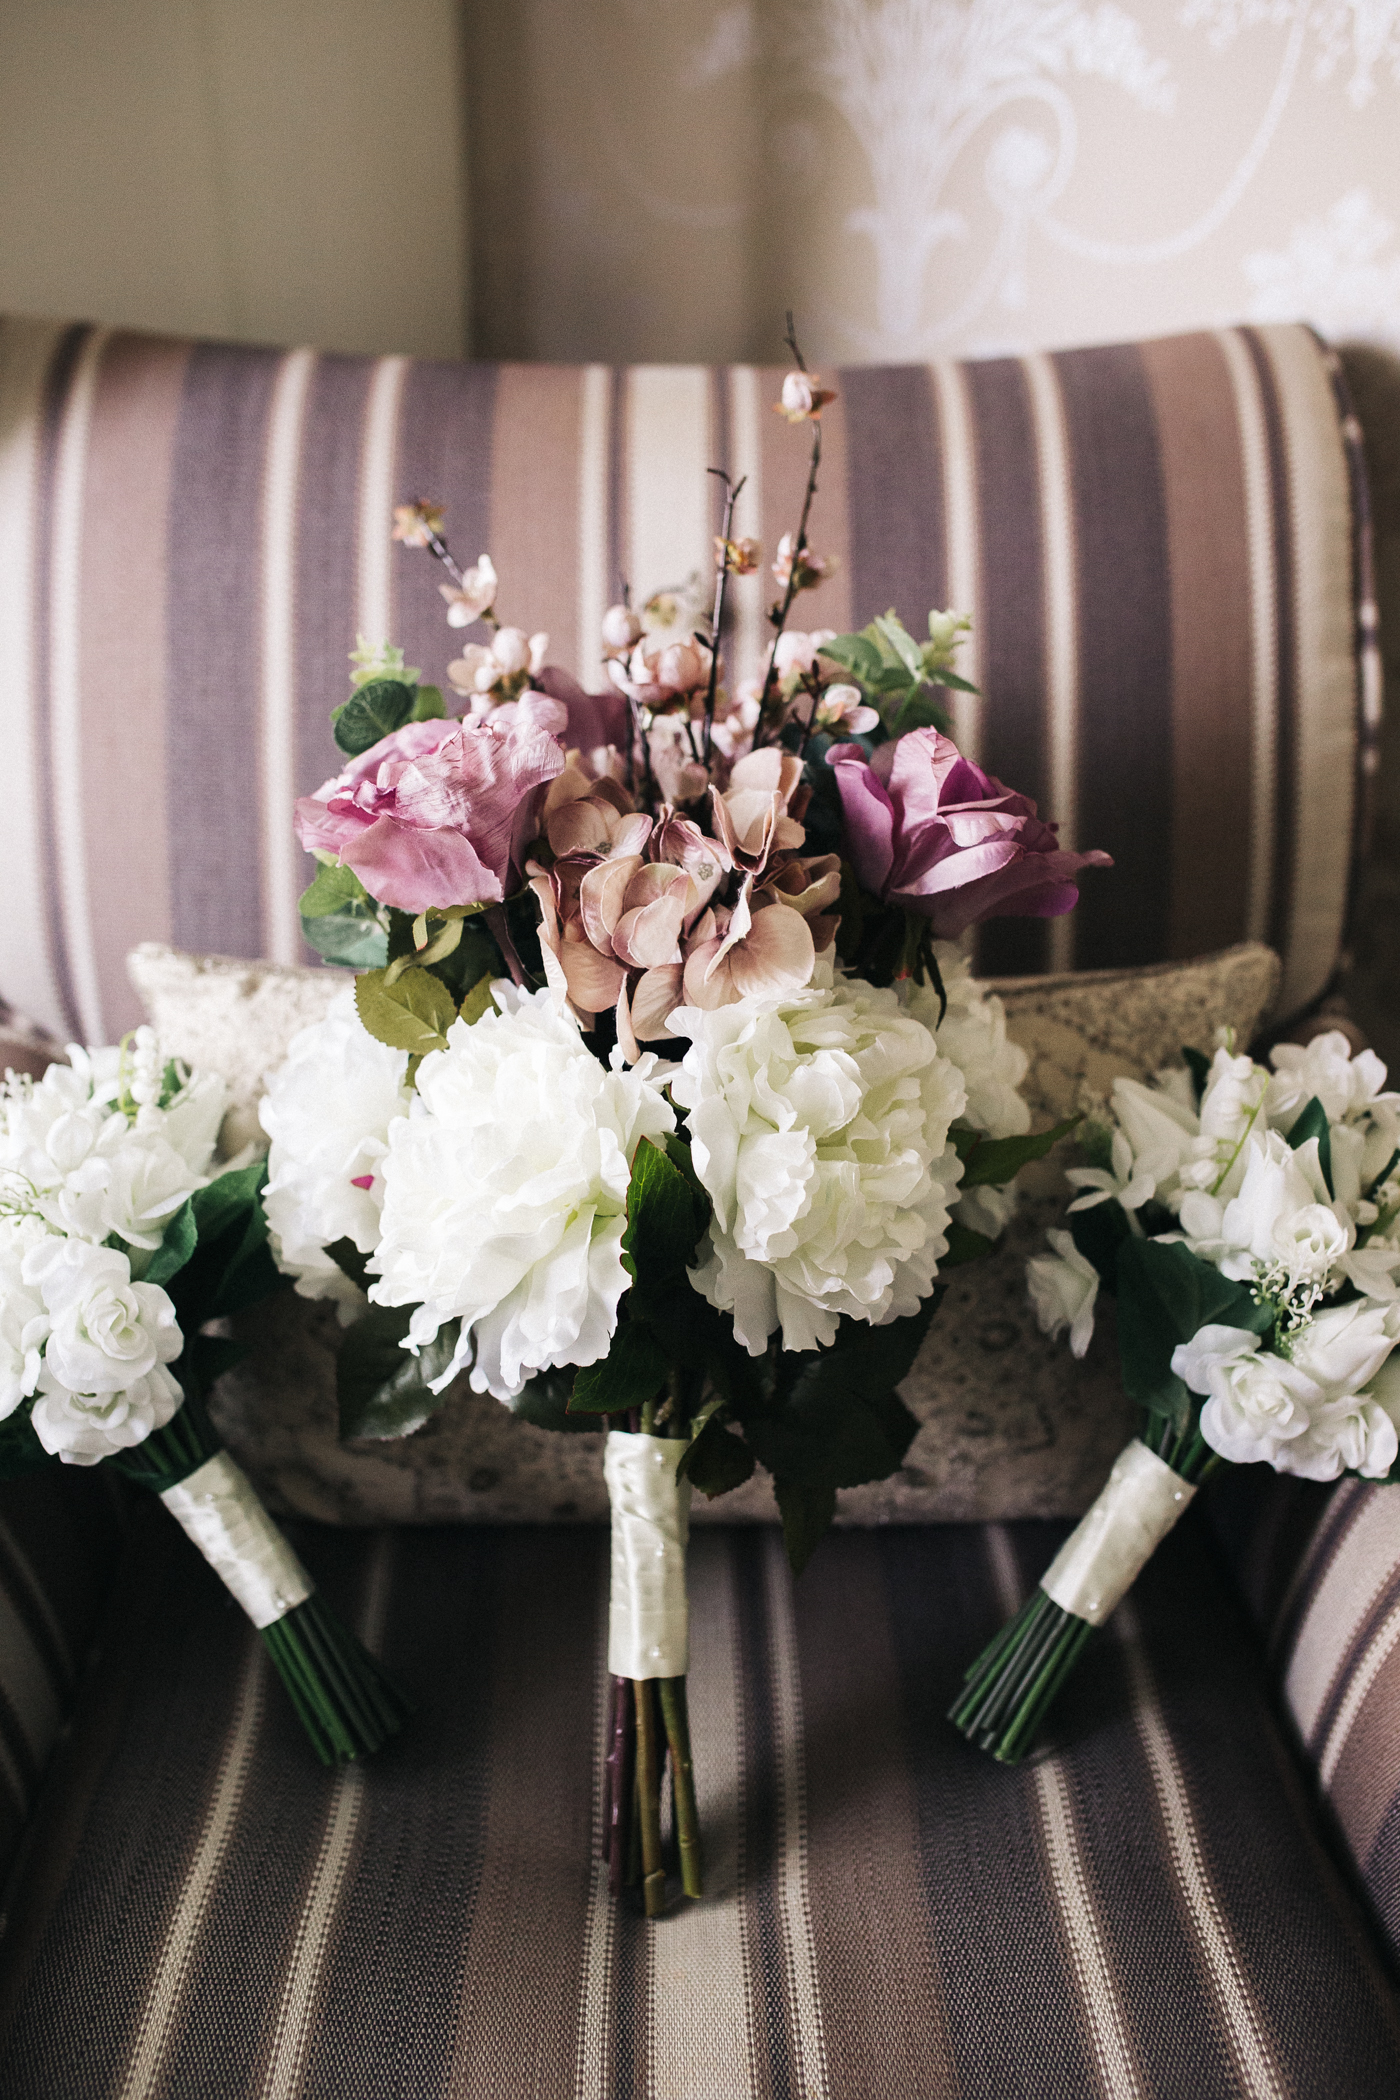 white and purple wedding bouquets. relaxed teesside middlesbrough wedding photographer, wedding at home